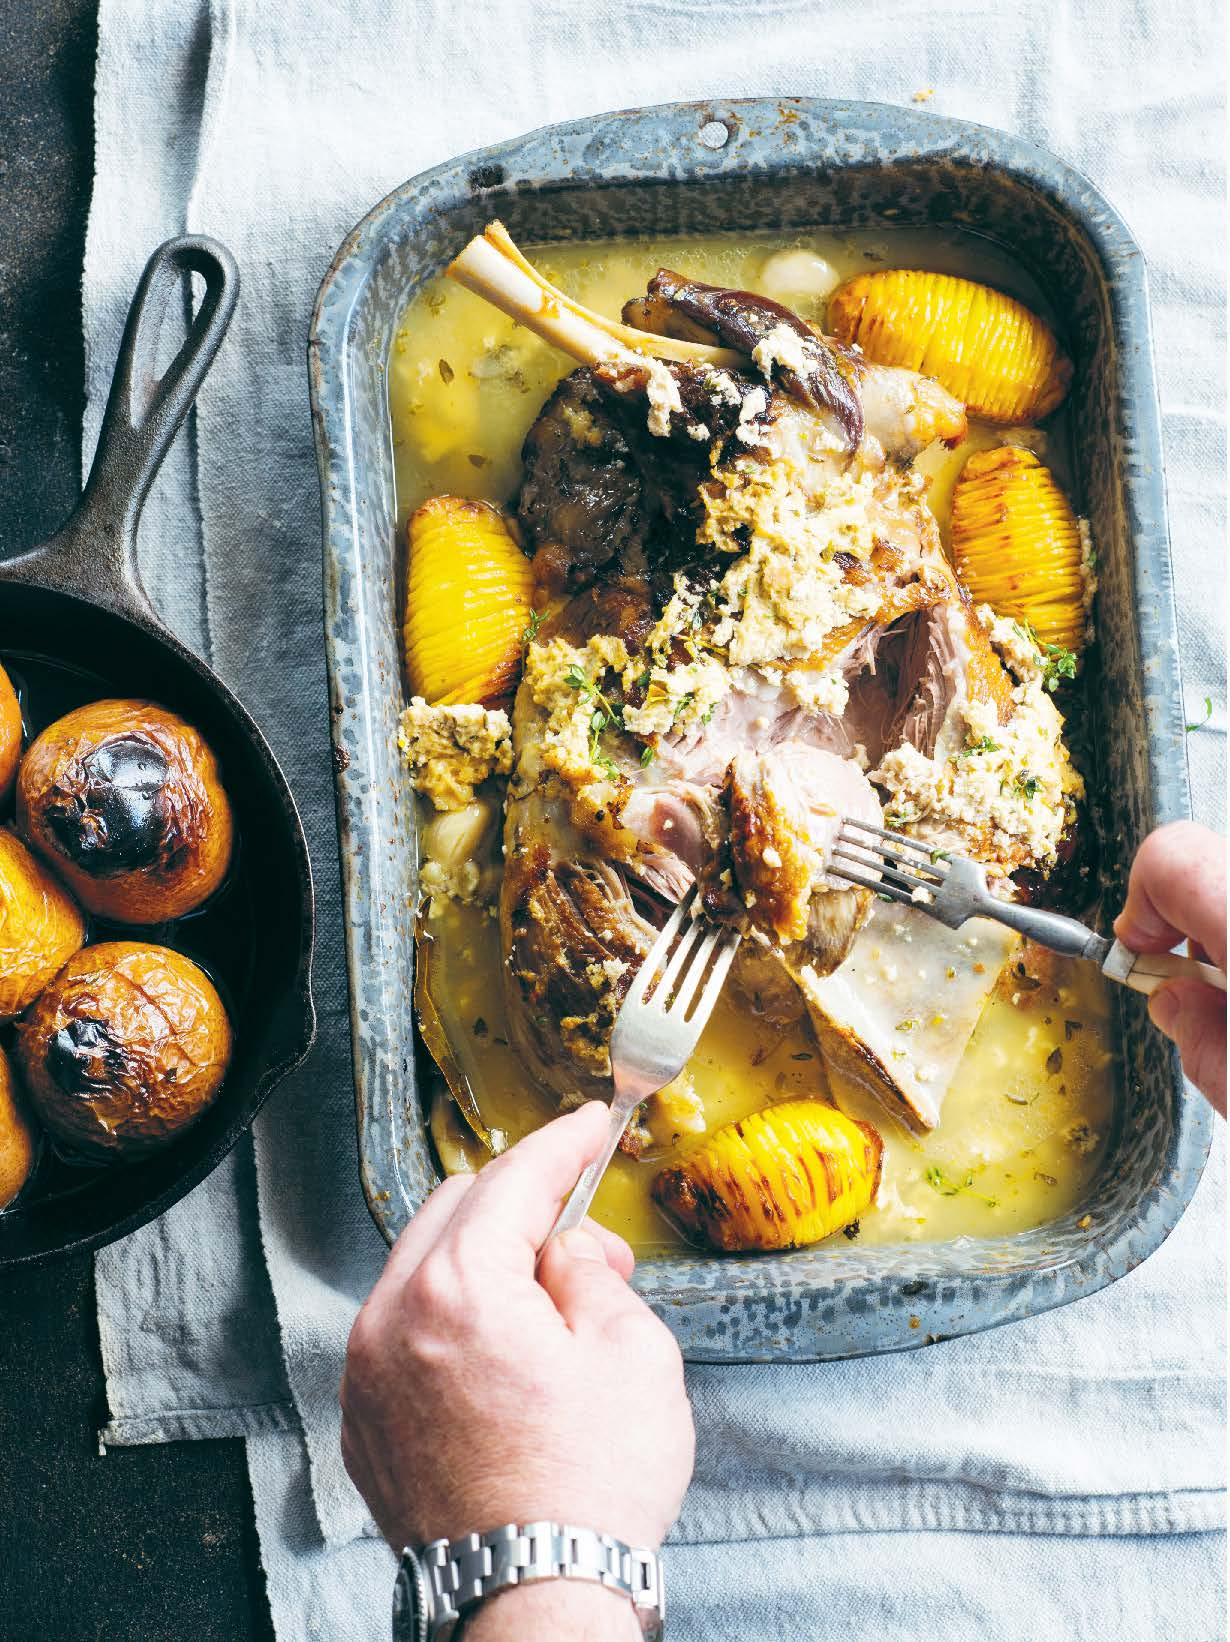 Pot-roasted shoulder of lamb cooked in buttermilk with roast pears and potatoes